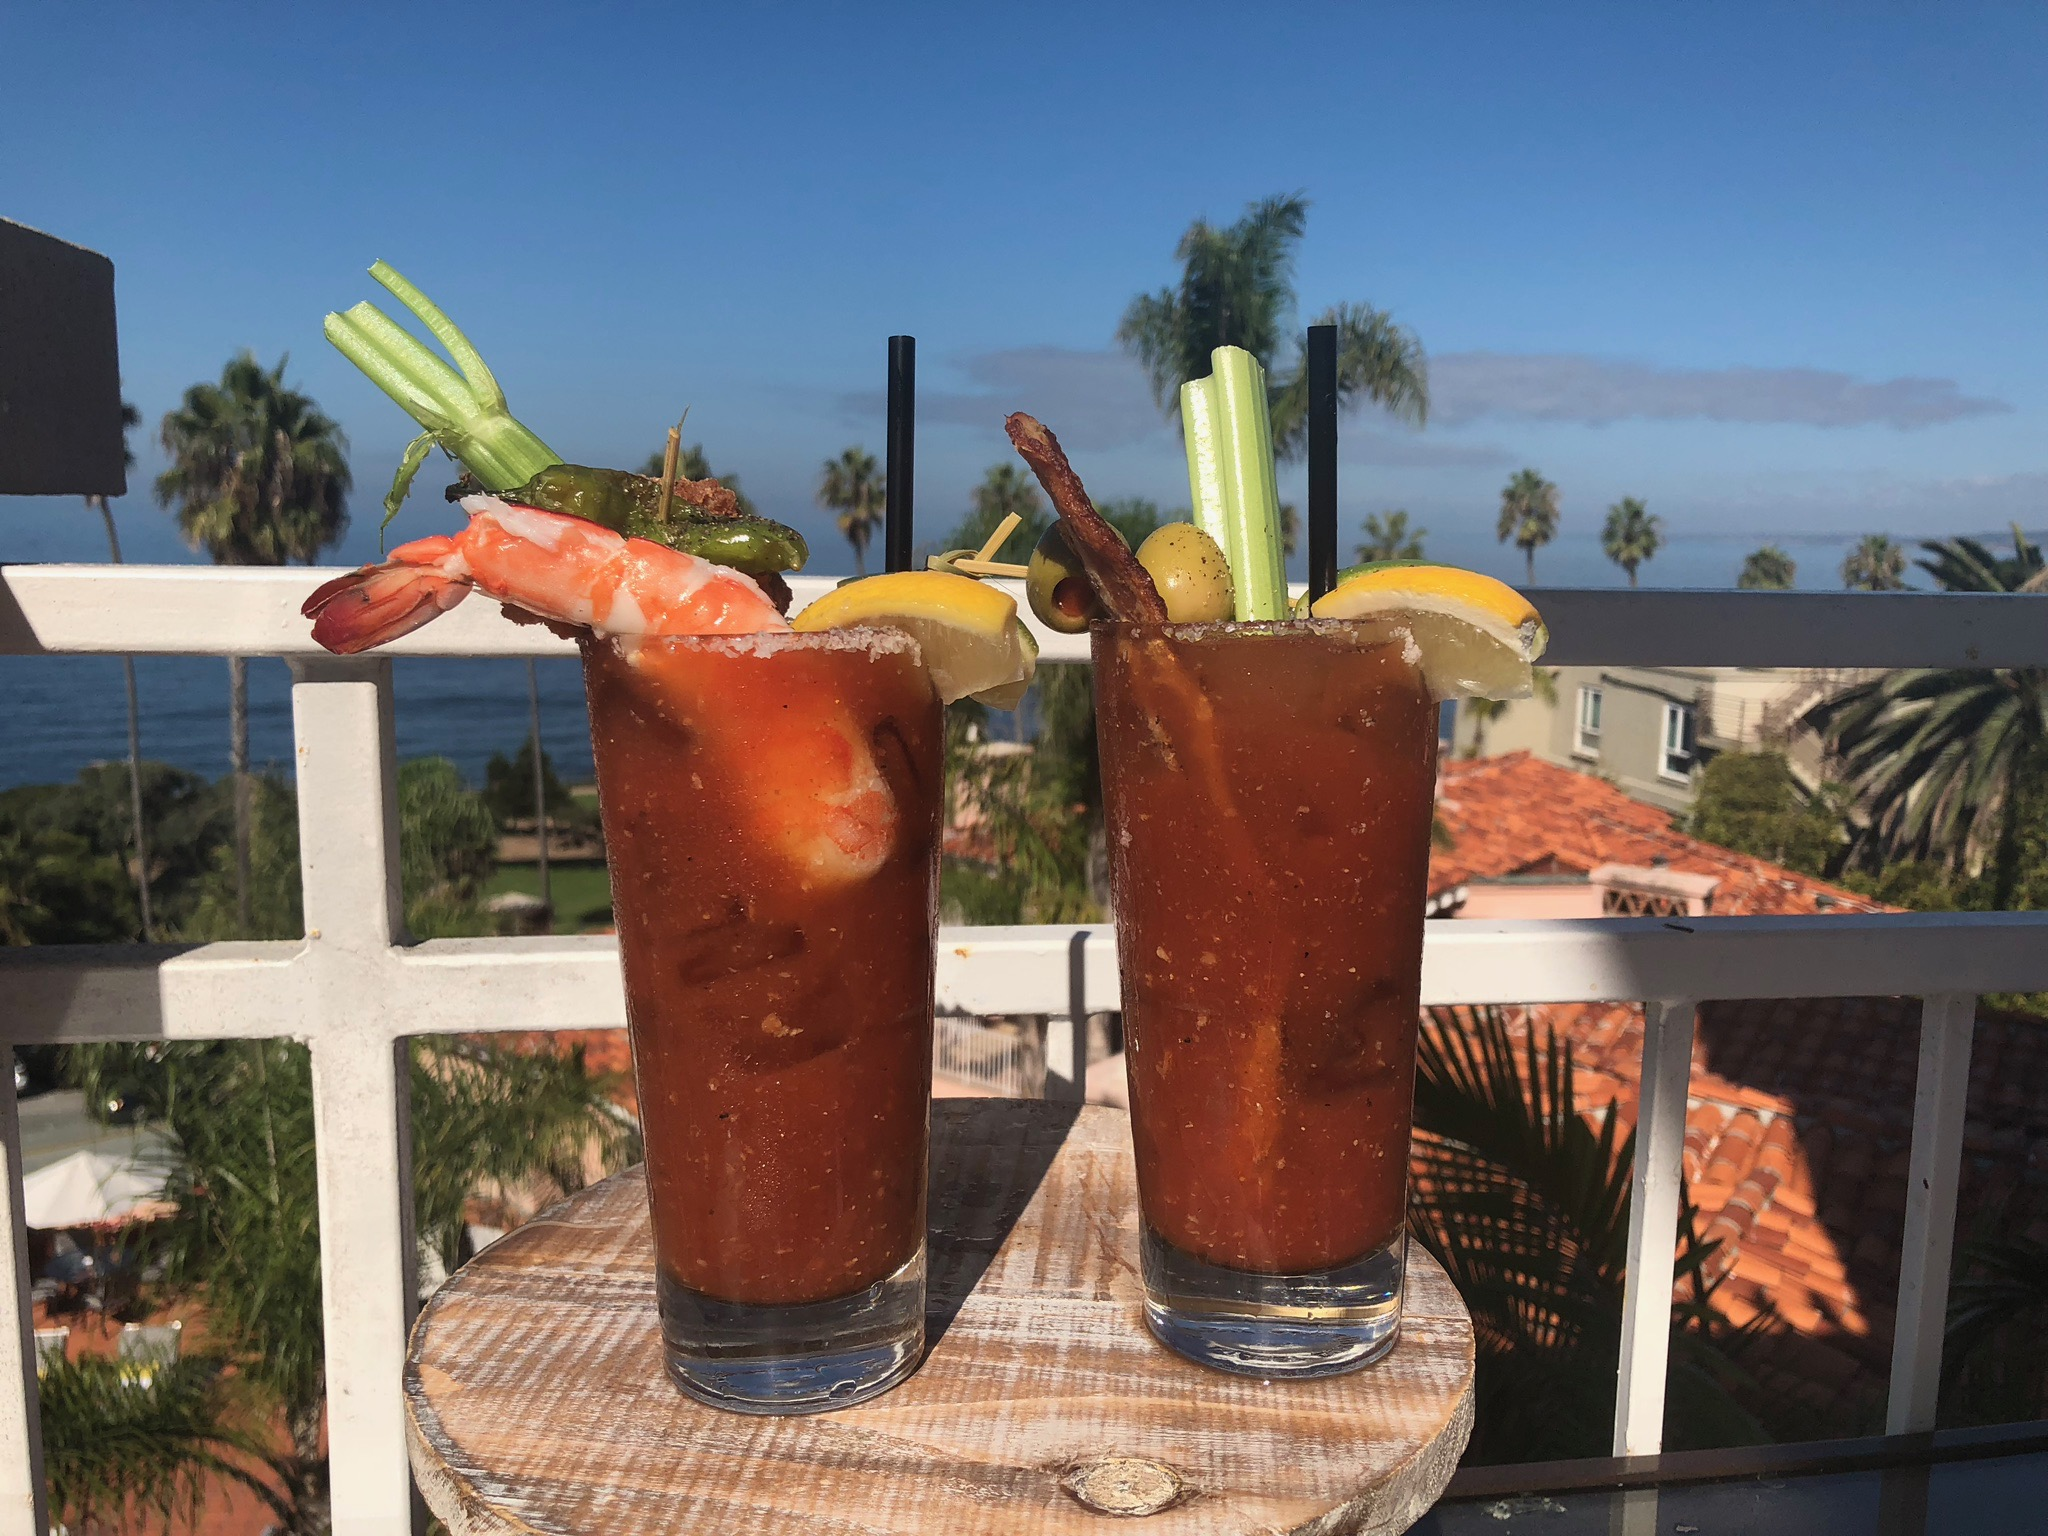 Bayou and classic bloodys with amazing ocean views